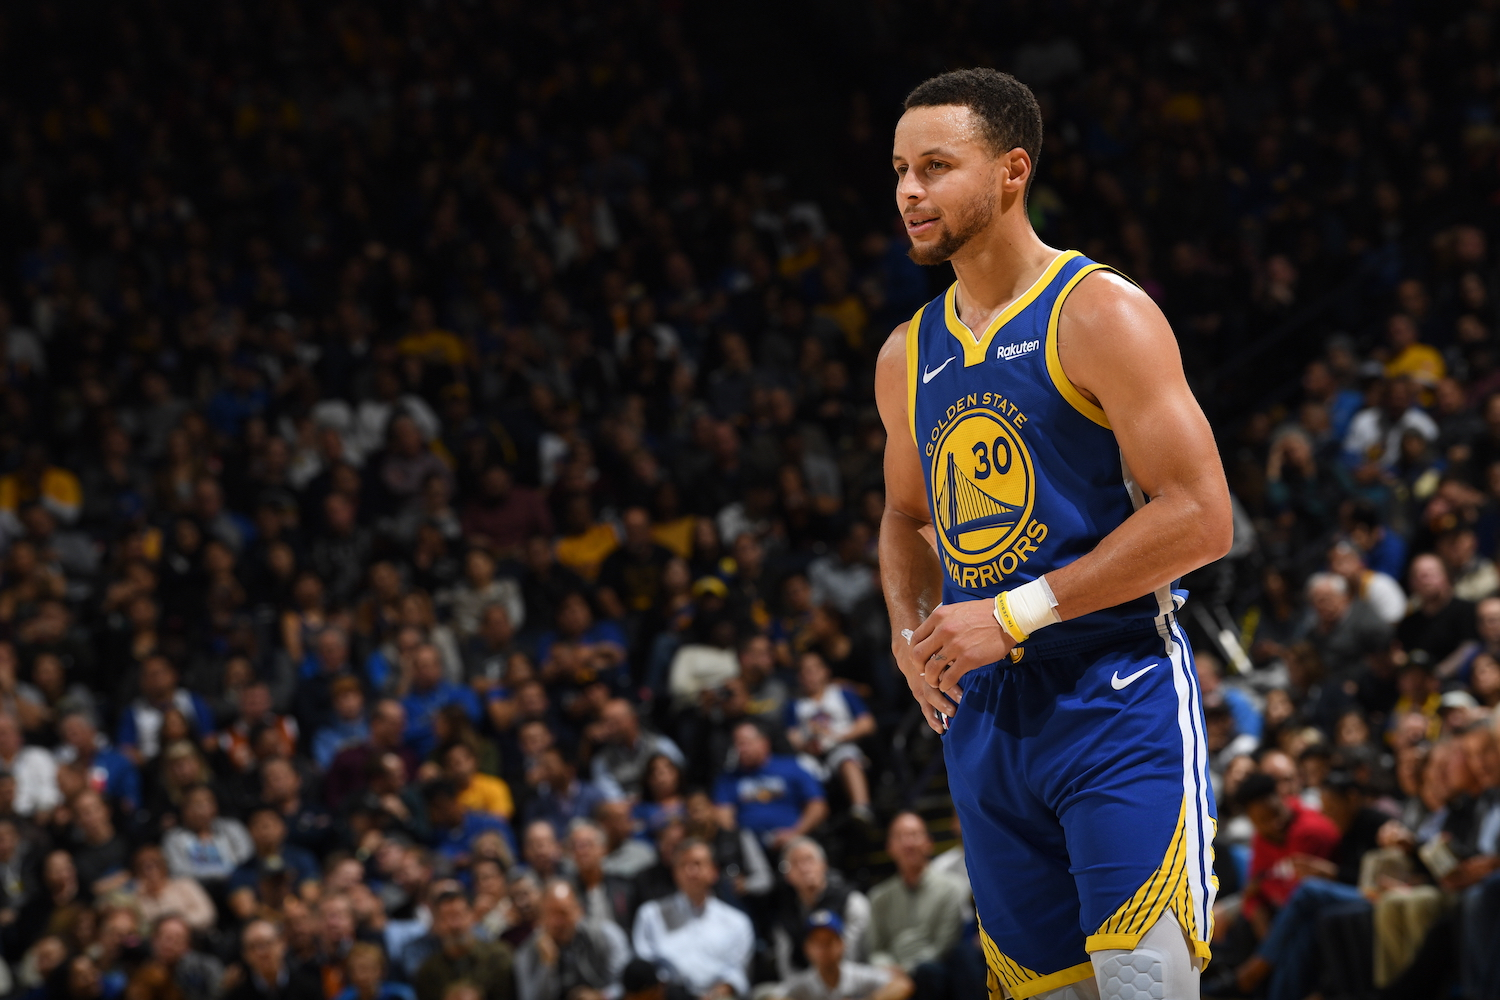 Stephen Curry has launched the 'Underrated Tour Powered by Rakuten' to help young, underdog athletes write their own tales of triumph.